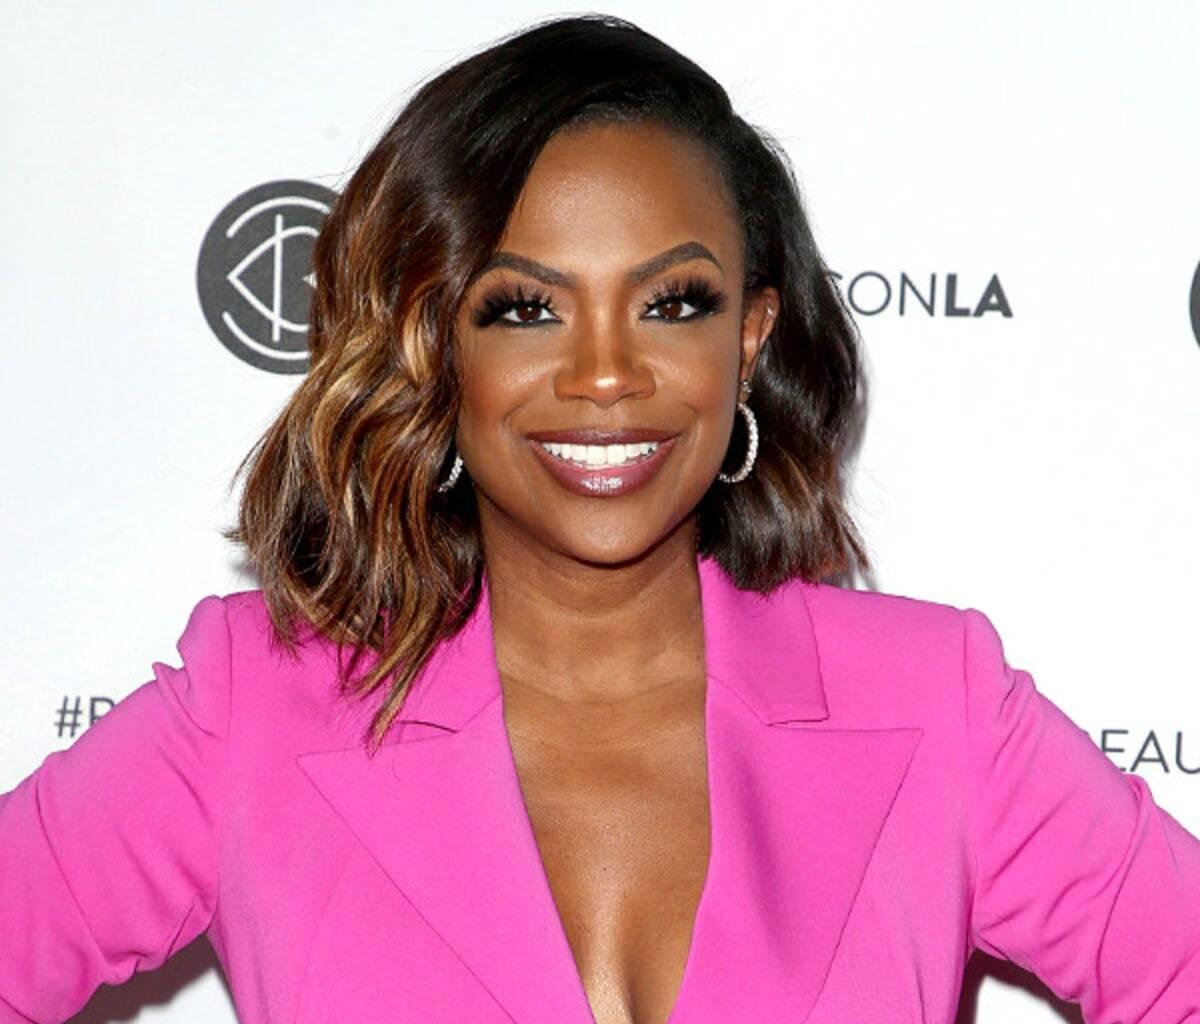 Kandi Burruss Shares A Funny Story About Her Life